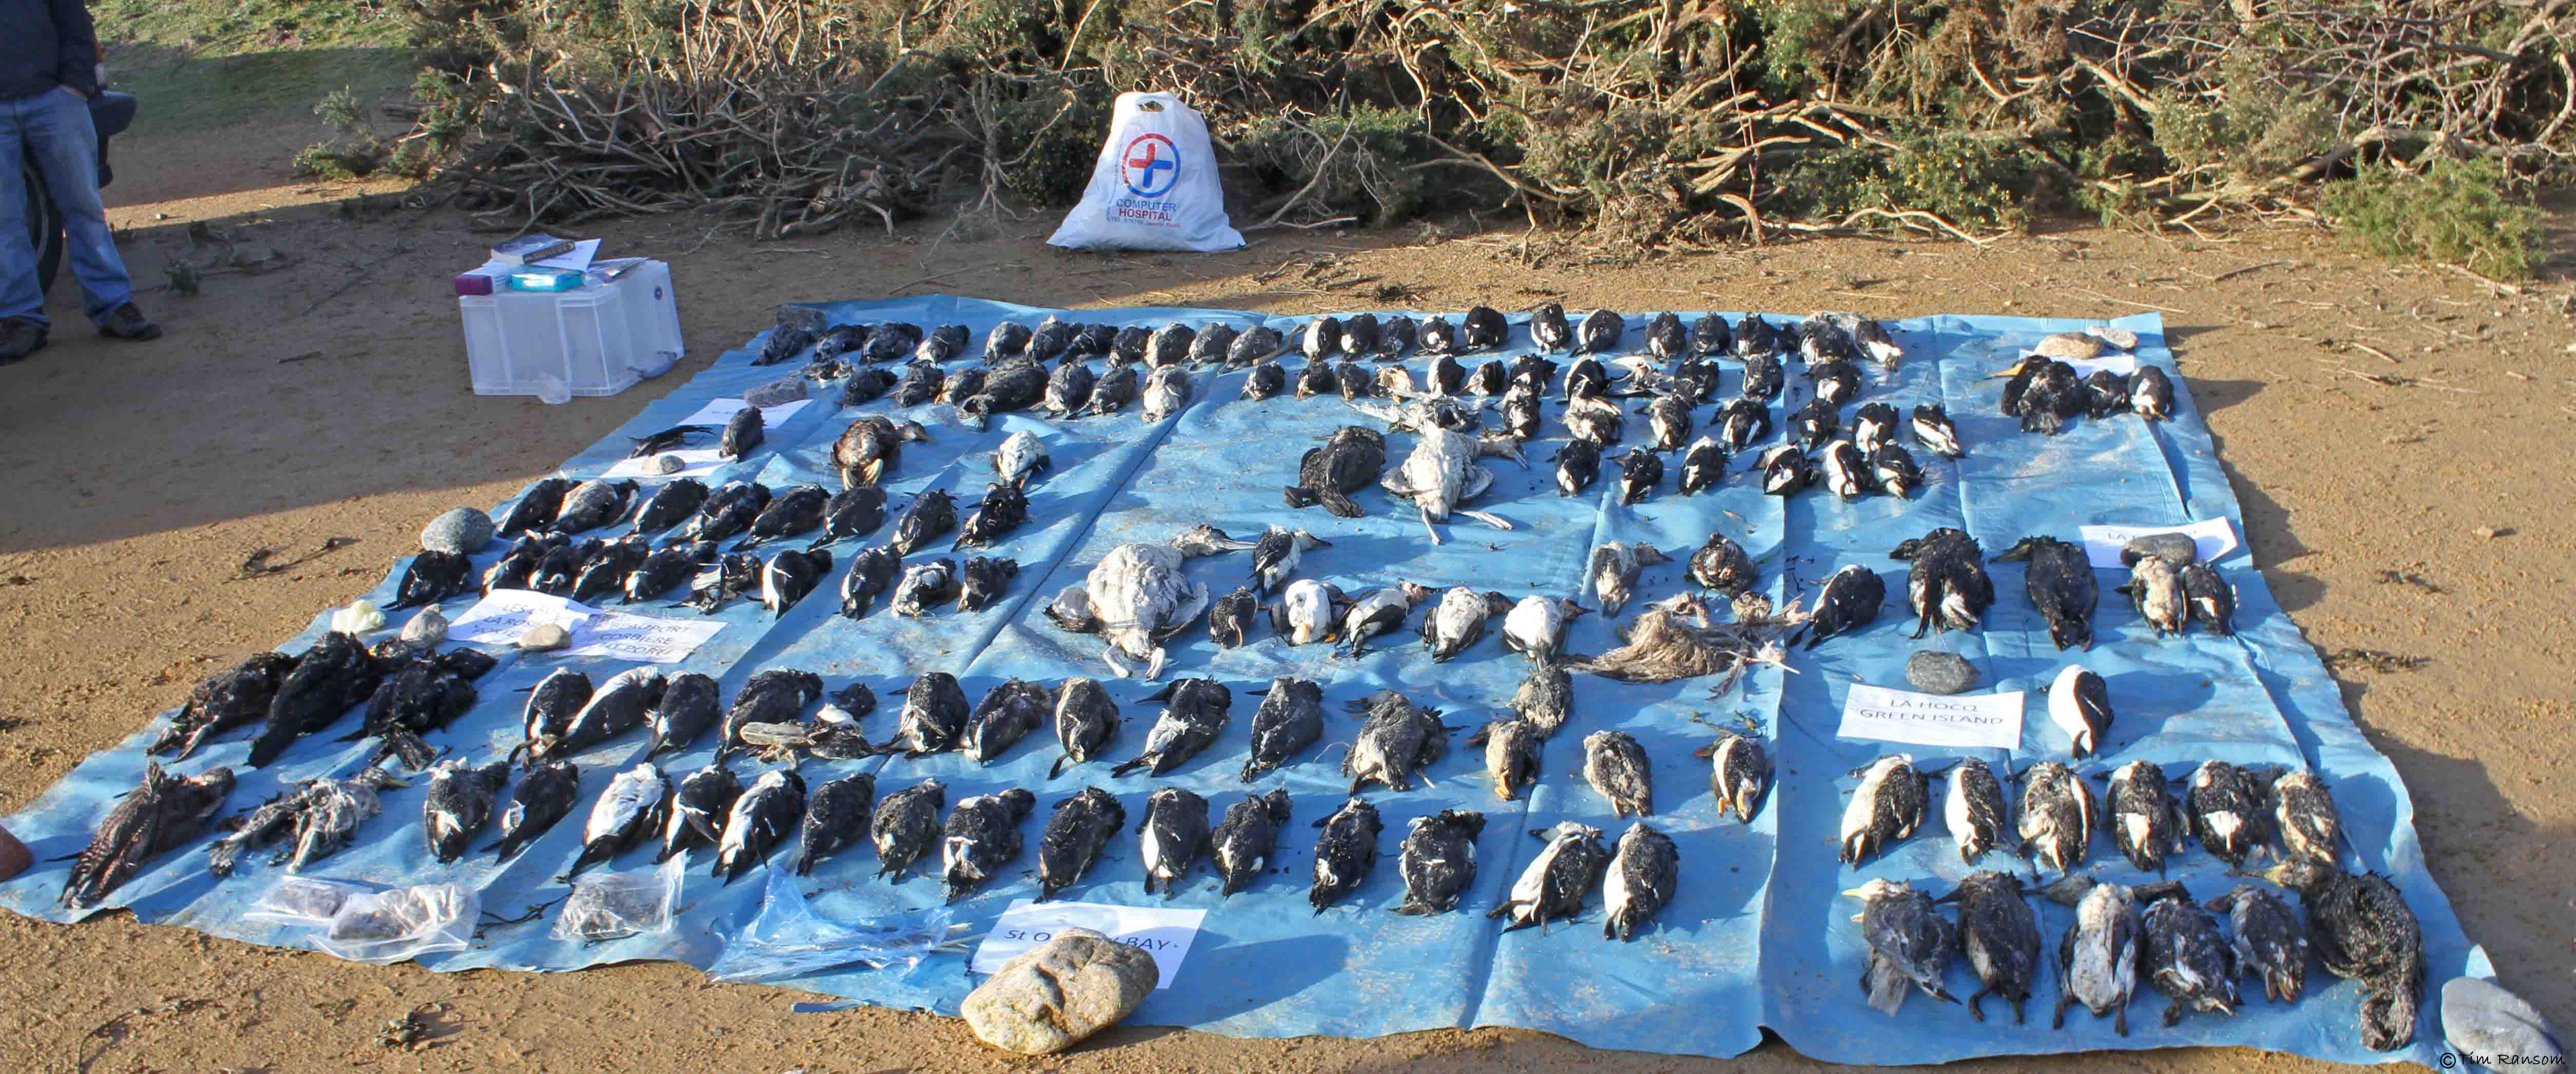 Dead seabirds collected in Jersey on 16th February 2014. Photo by Tim Ransom